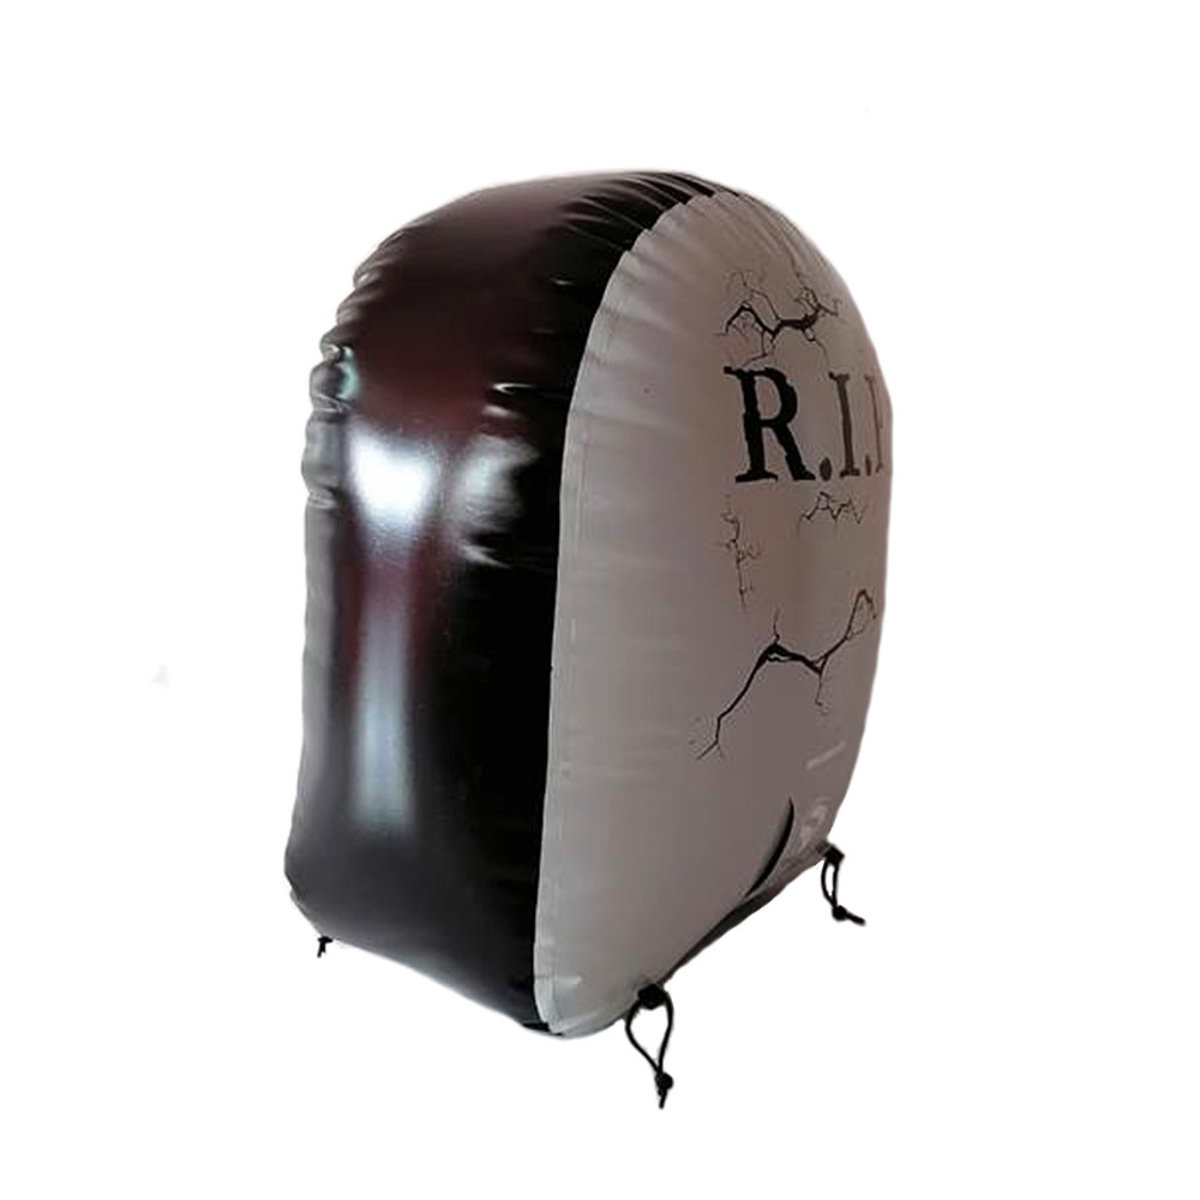 View larger image of Valken GB Inflatable 'RIP' Tombstone Bunker w/pegs